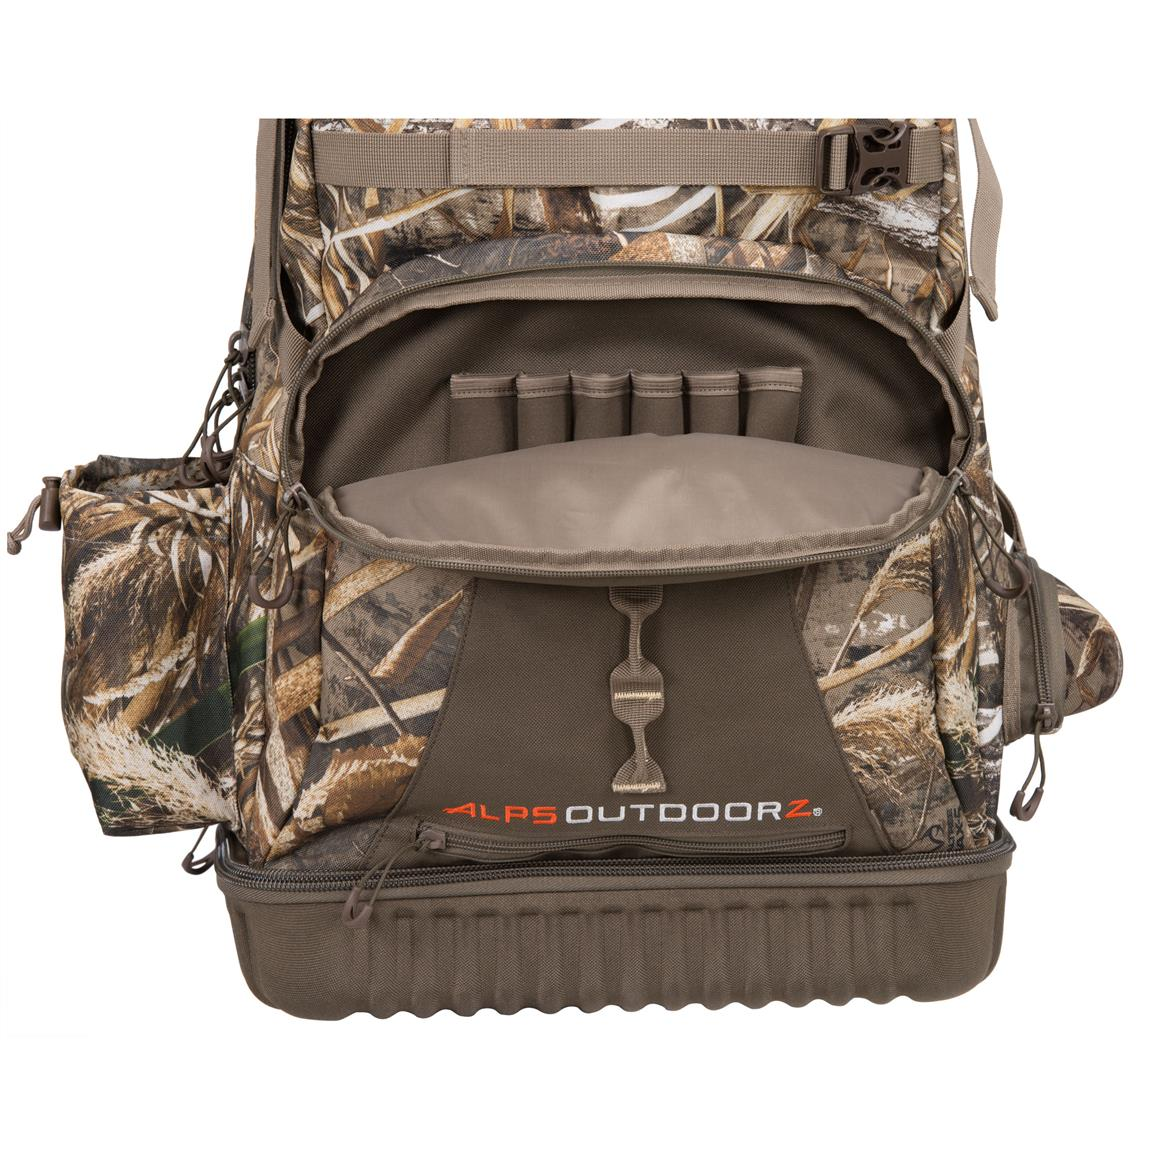 Alps Outdoorz Backpack Blind Bag